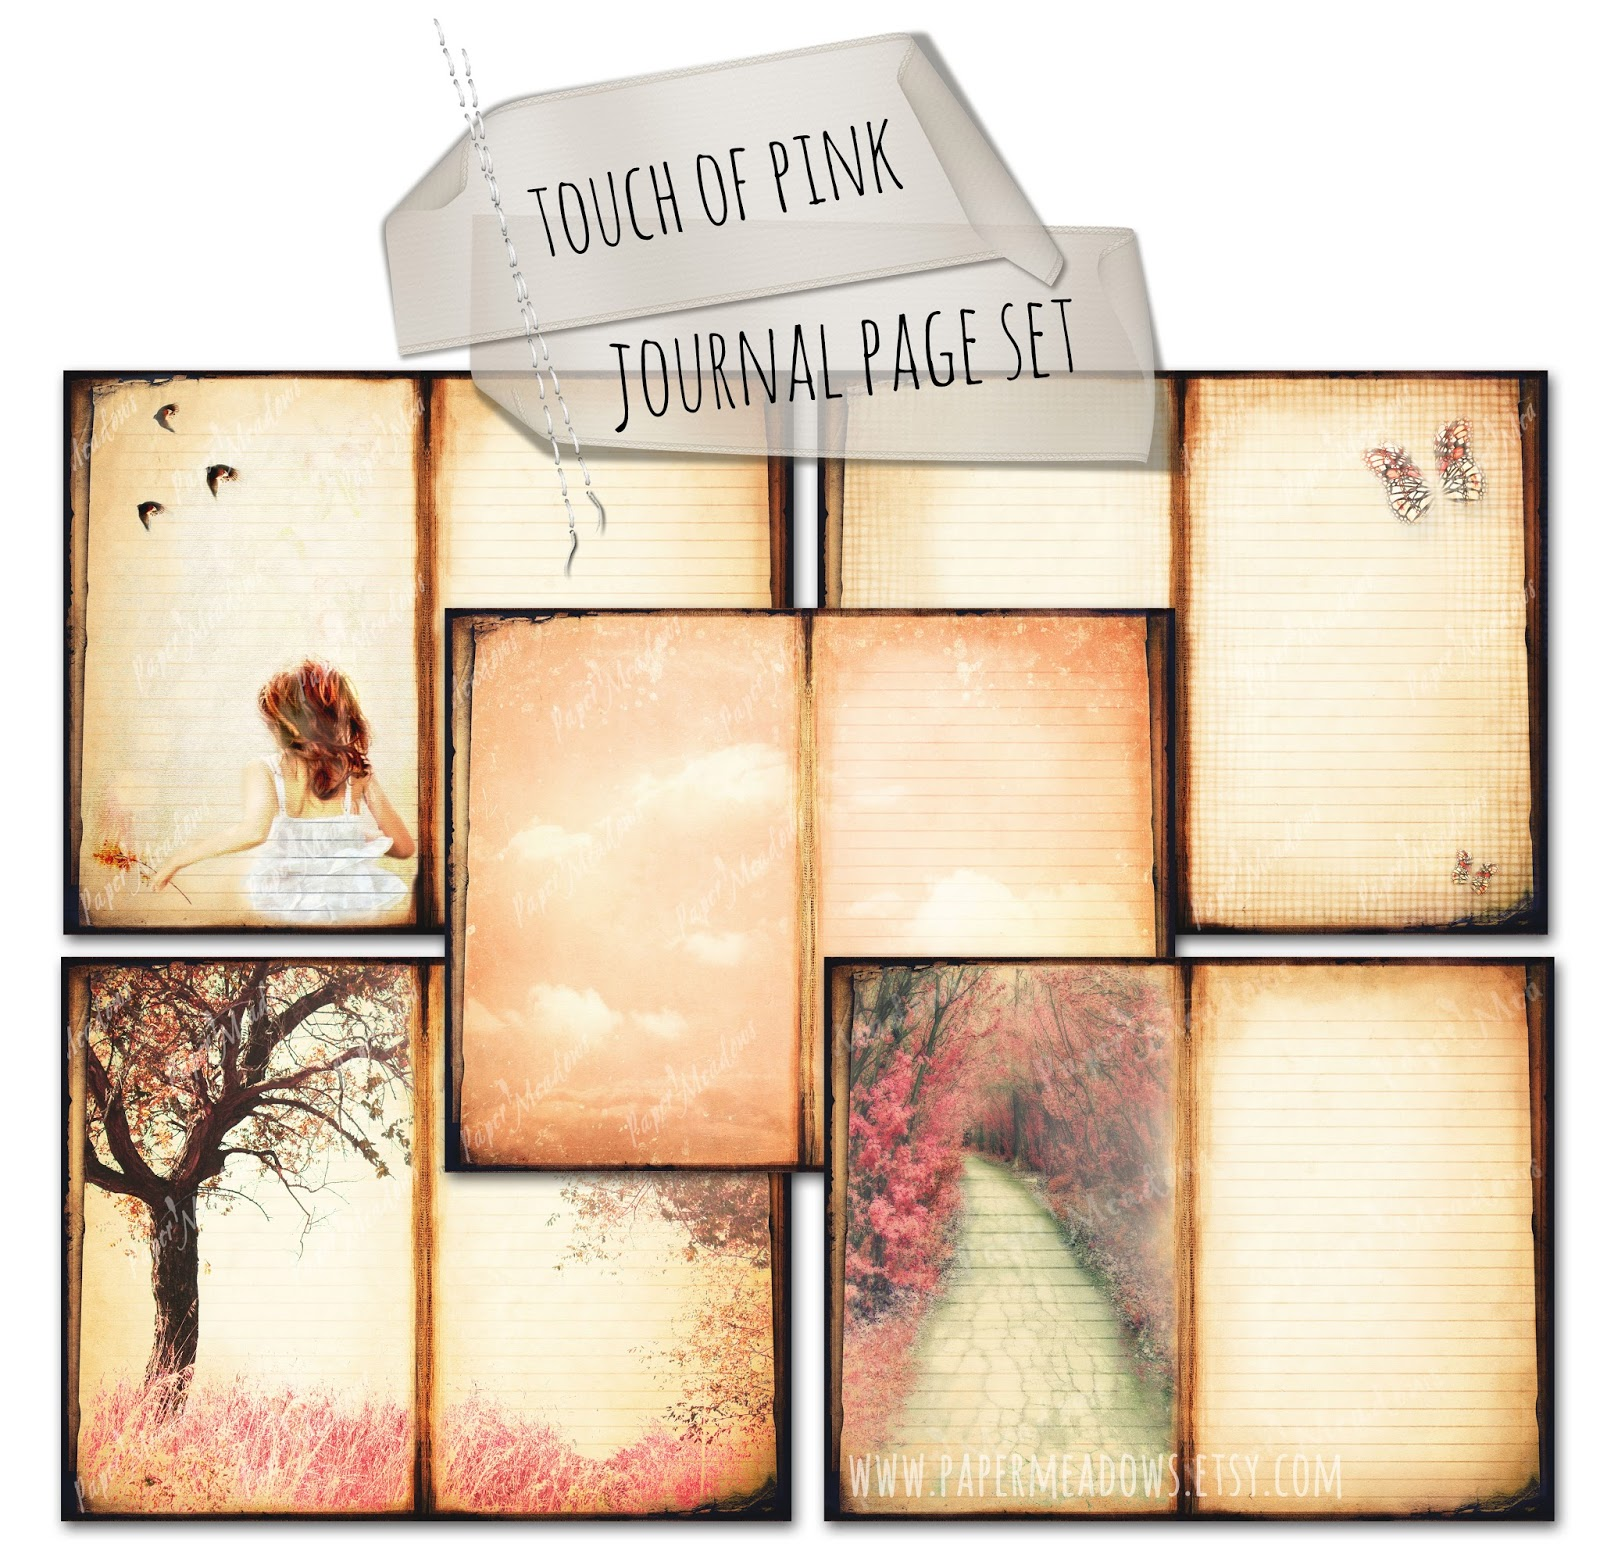 Touch of Pink Journal Page Set.  You can purchase and download our photography creations and instantly print at home from our Paper Meadows Photography Shop on ETSY. To Visit our shop now click here.